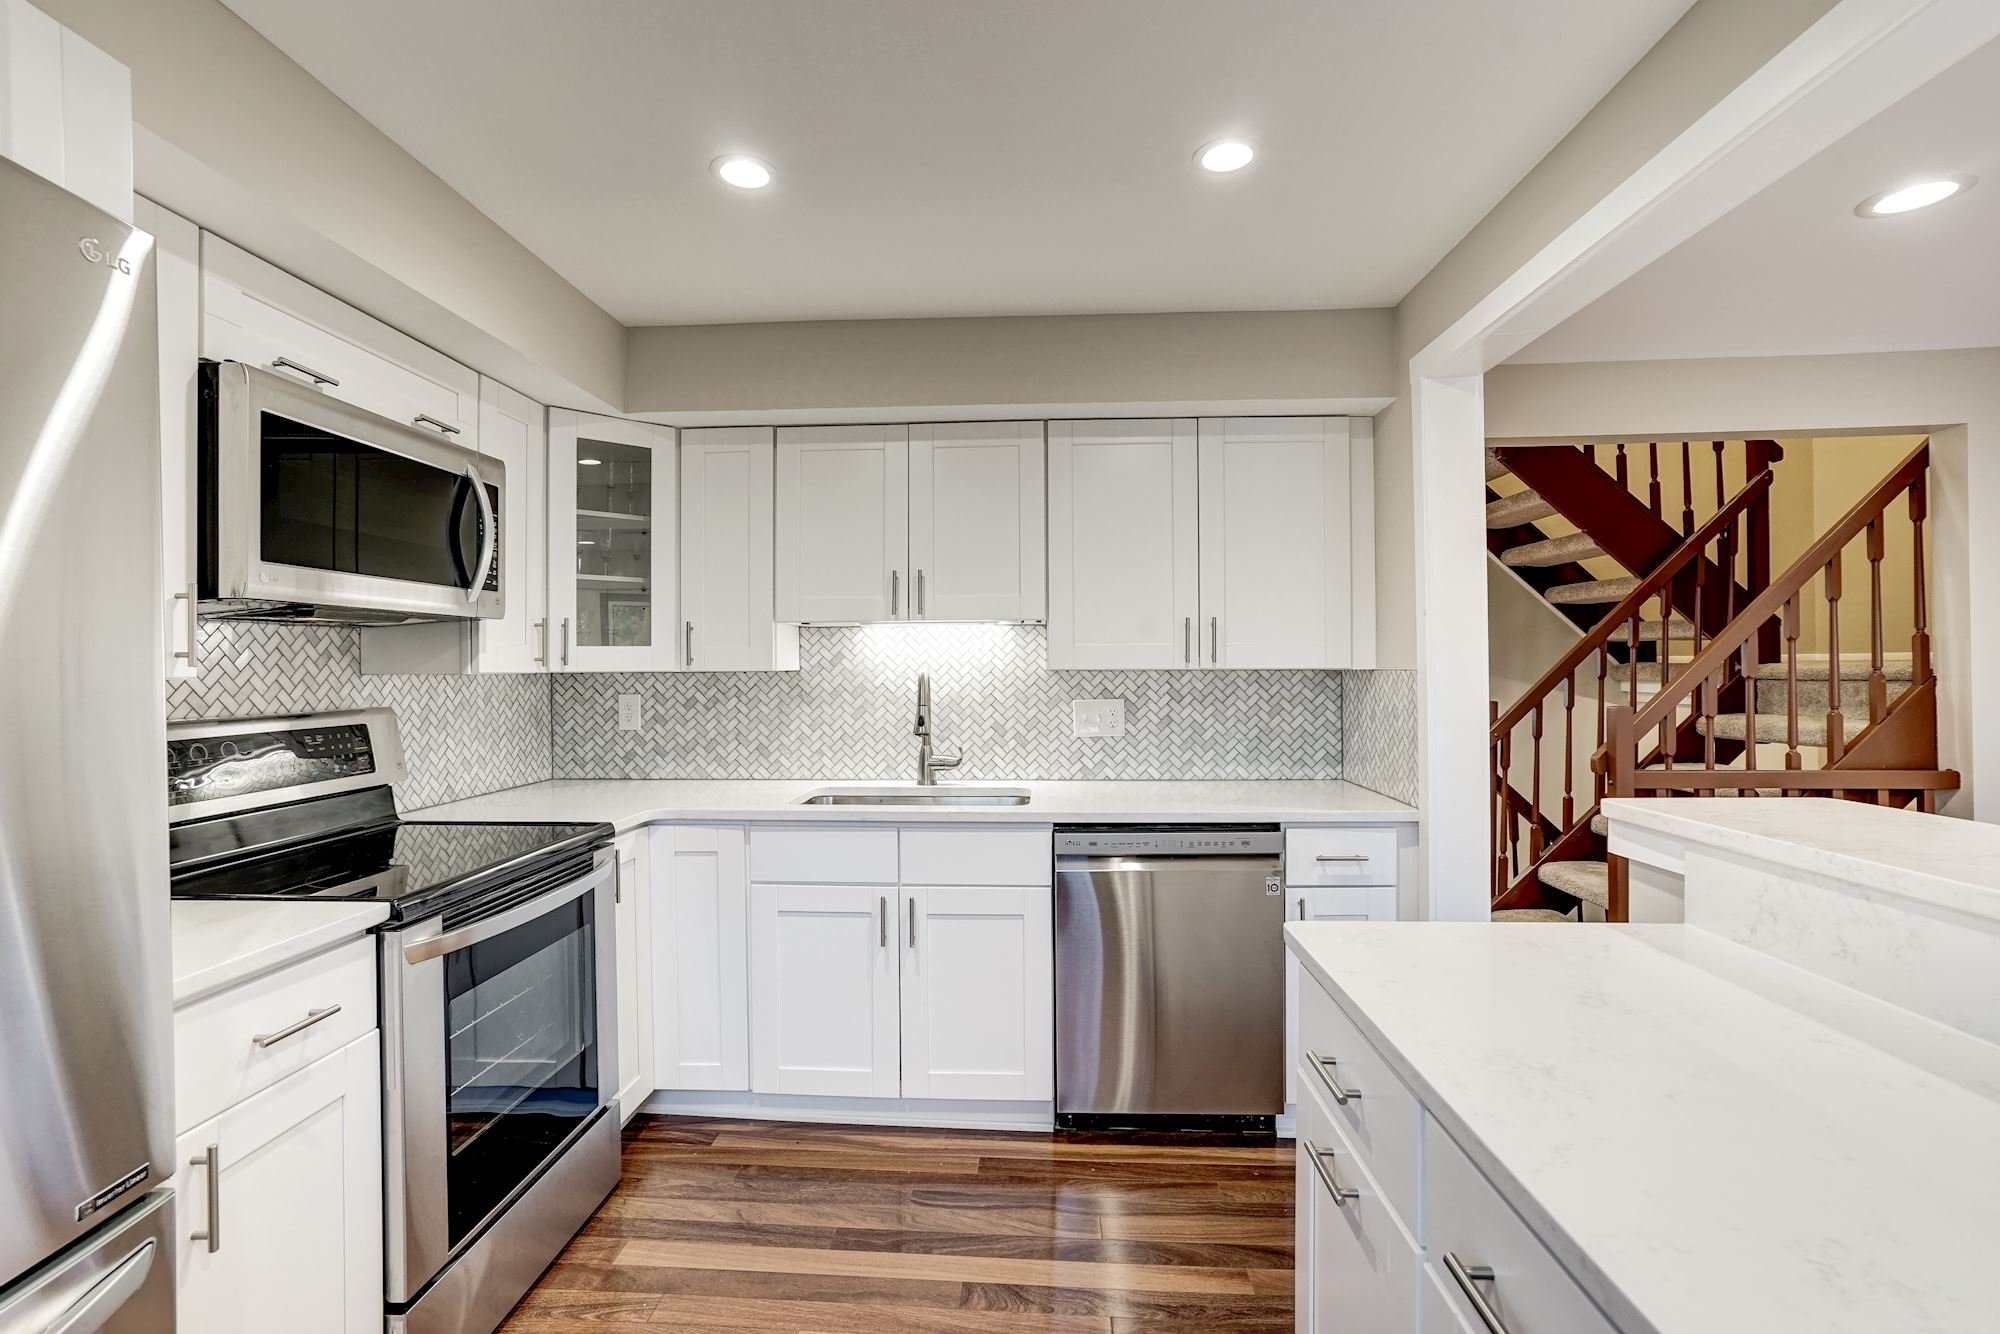 NEW LISTING: 3 BD Townhome With Remodeled Kitchen in Oakton, VA